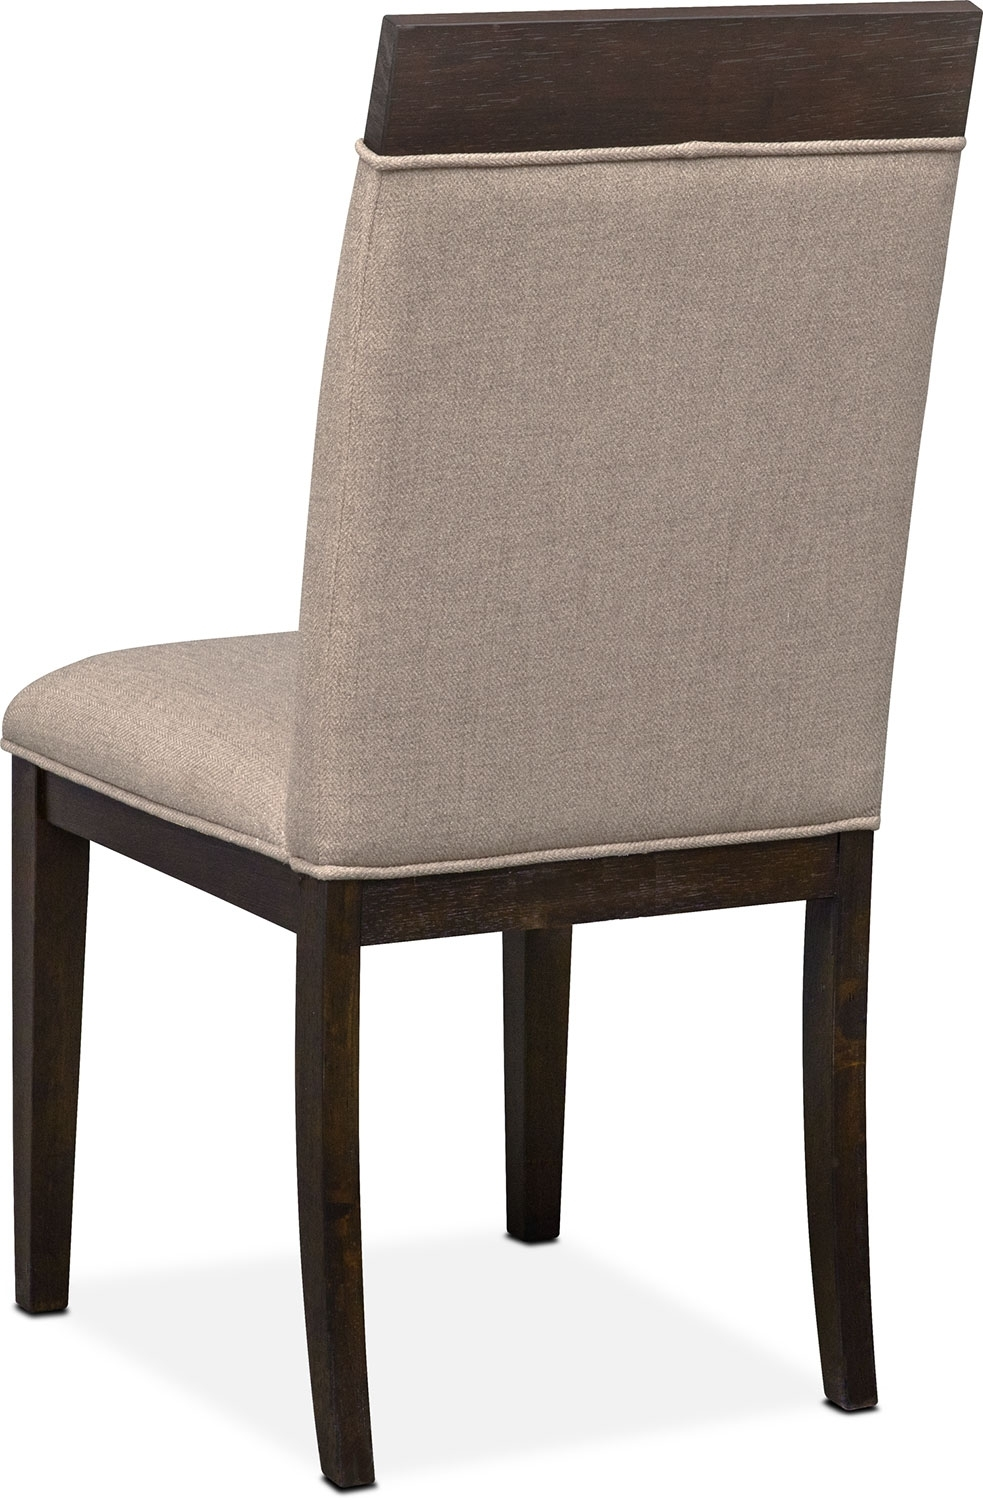 Gavin Side Chair – Brownstone | Value City Furniture And Mattresses Inside Recent Gavin 7 Piece Dining Sets With Clint Side Chairs (Photo 12 of 20)